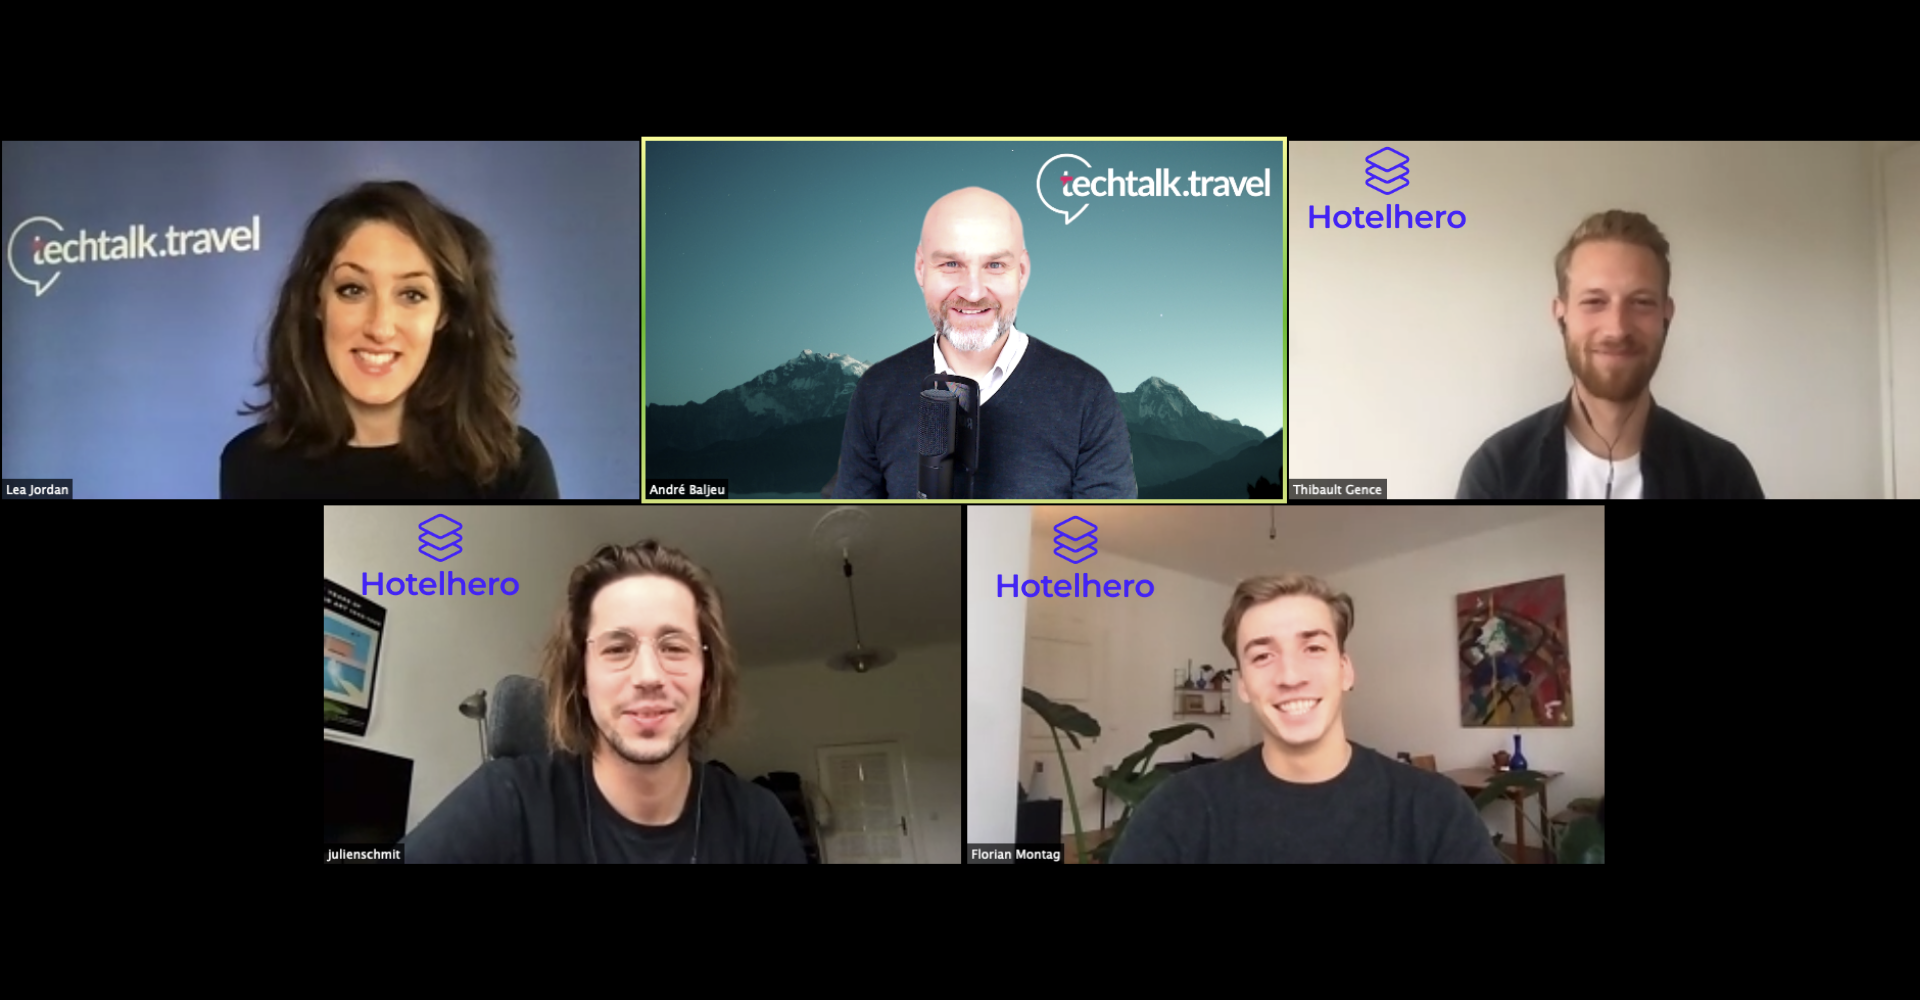 Partnership Announcement l Hotelhero and techtalk.travel